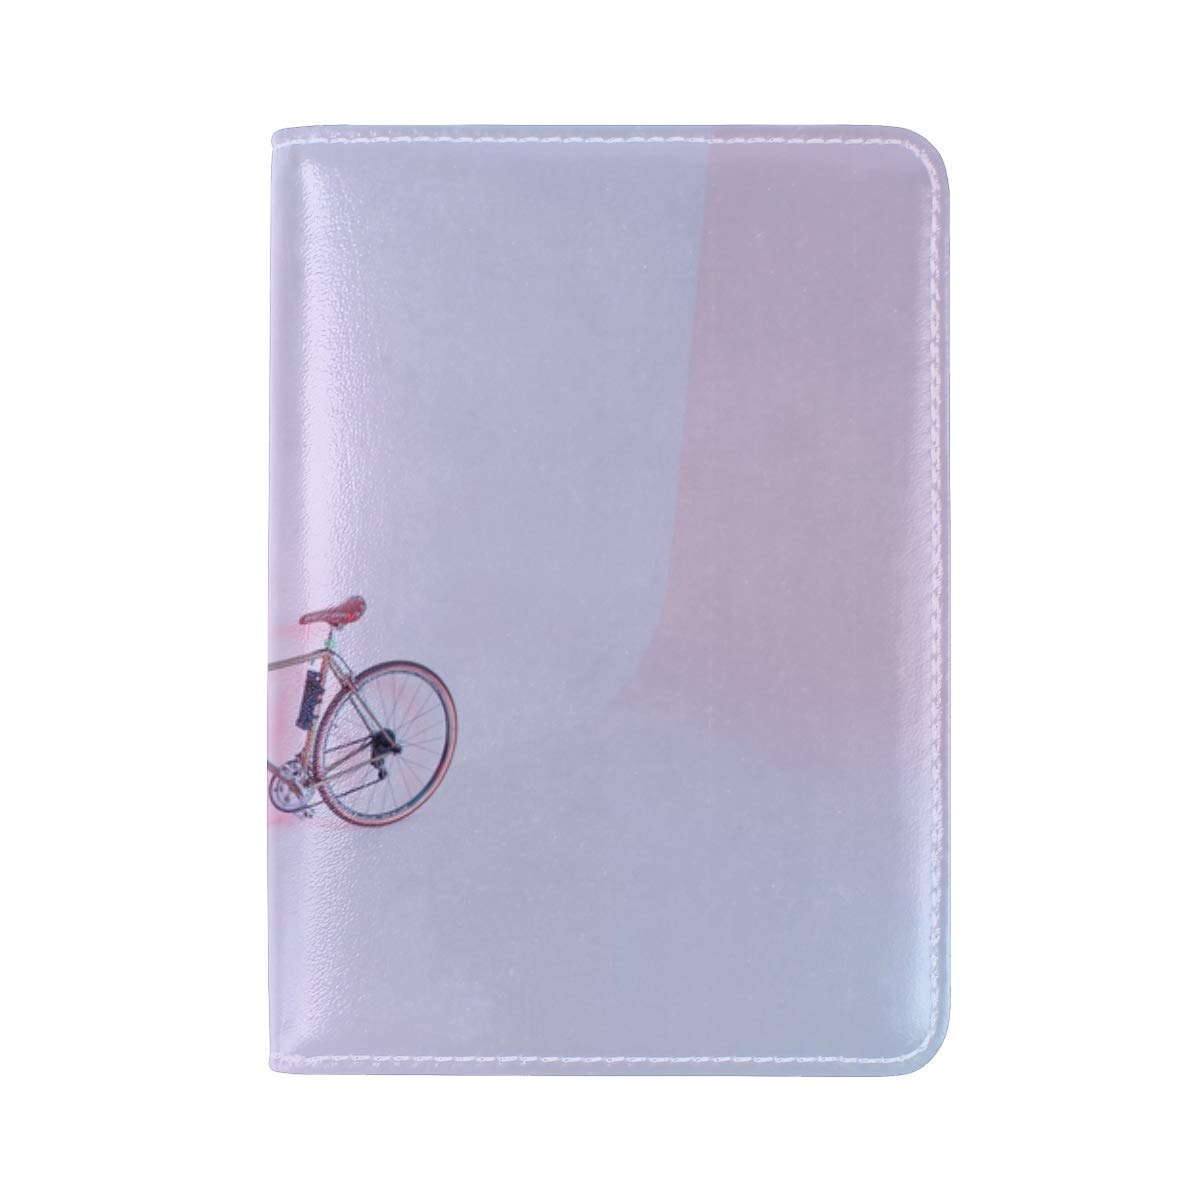 Bicycle Pink Light Leather Passport Holder Cover Case Travel One Pocket